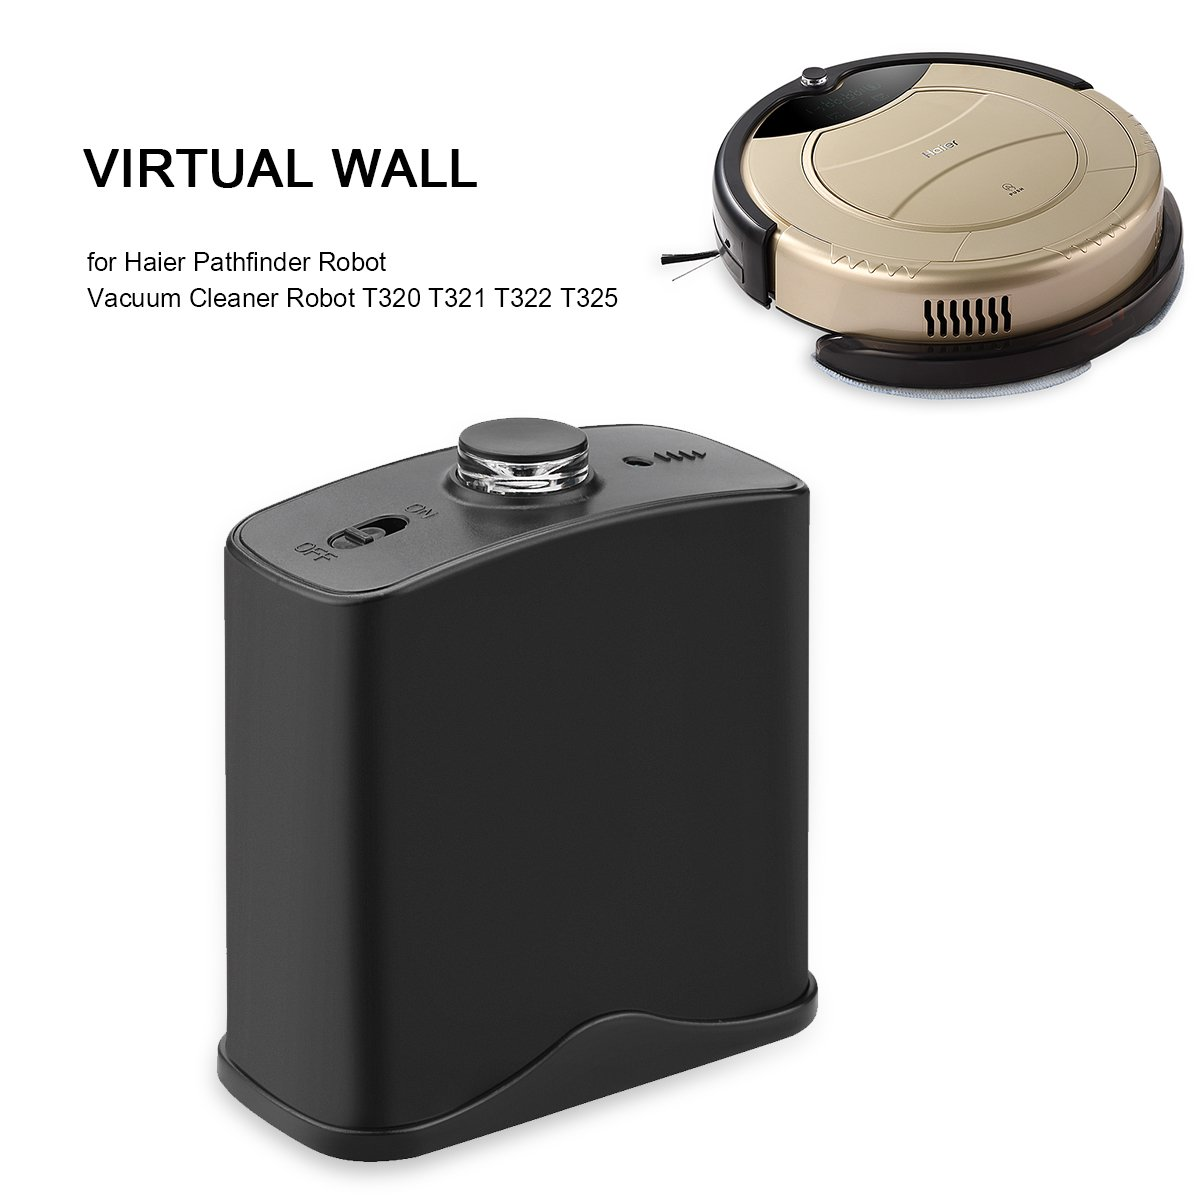 Pared virtual original para robot aspirador para Haier T320 T321 T322 T325, negro: Amazon.es: Hogar